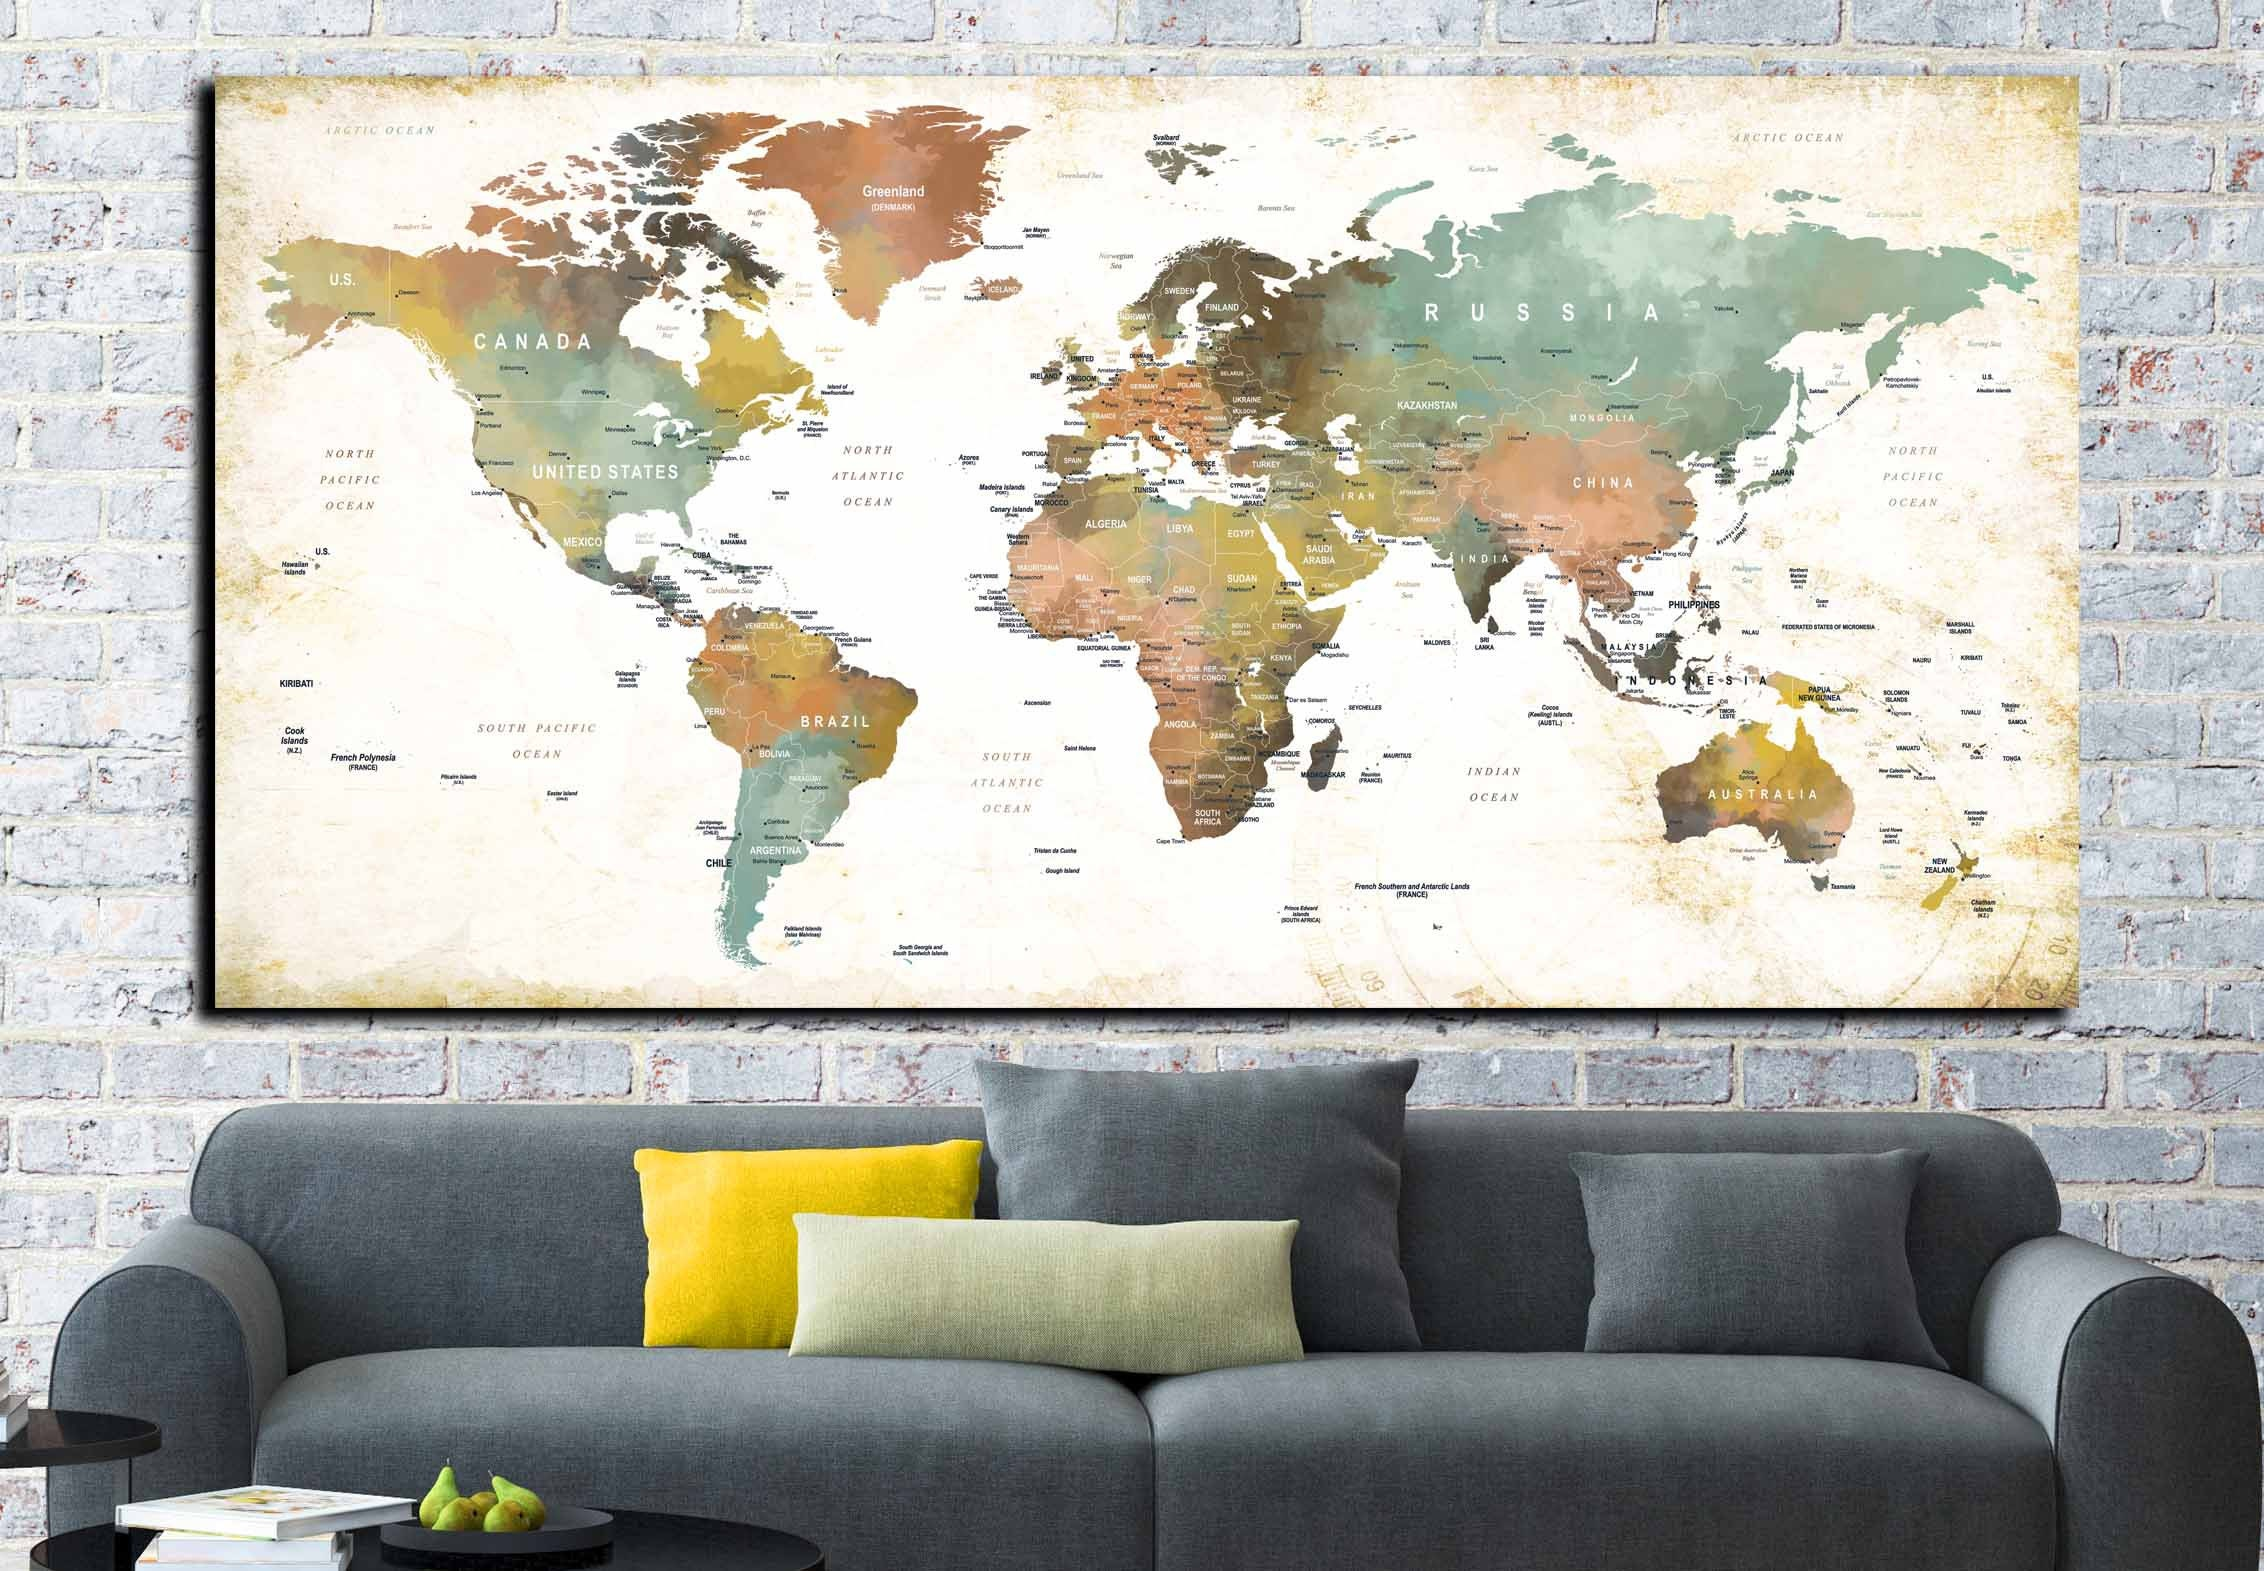 World map wall artworld map canvasworld map largeworld map push world map wall artworld map canvasworld map largeworld map push pinkids room artworld map printworld map panelworld map watercolor gumiabroncs Images